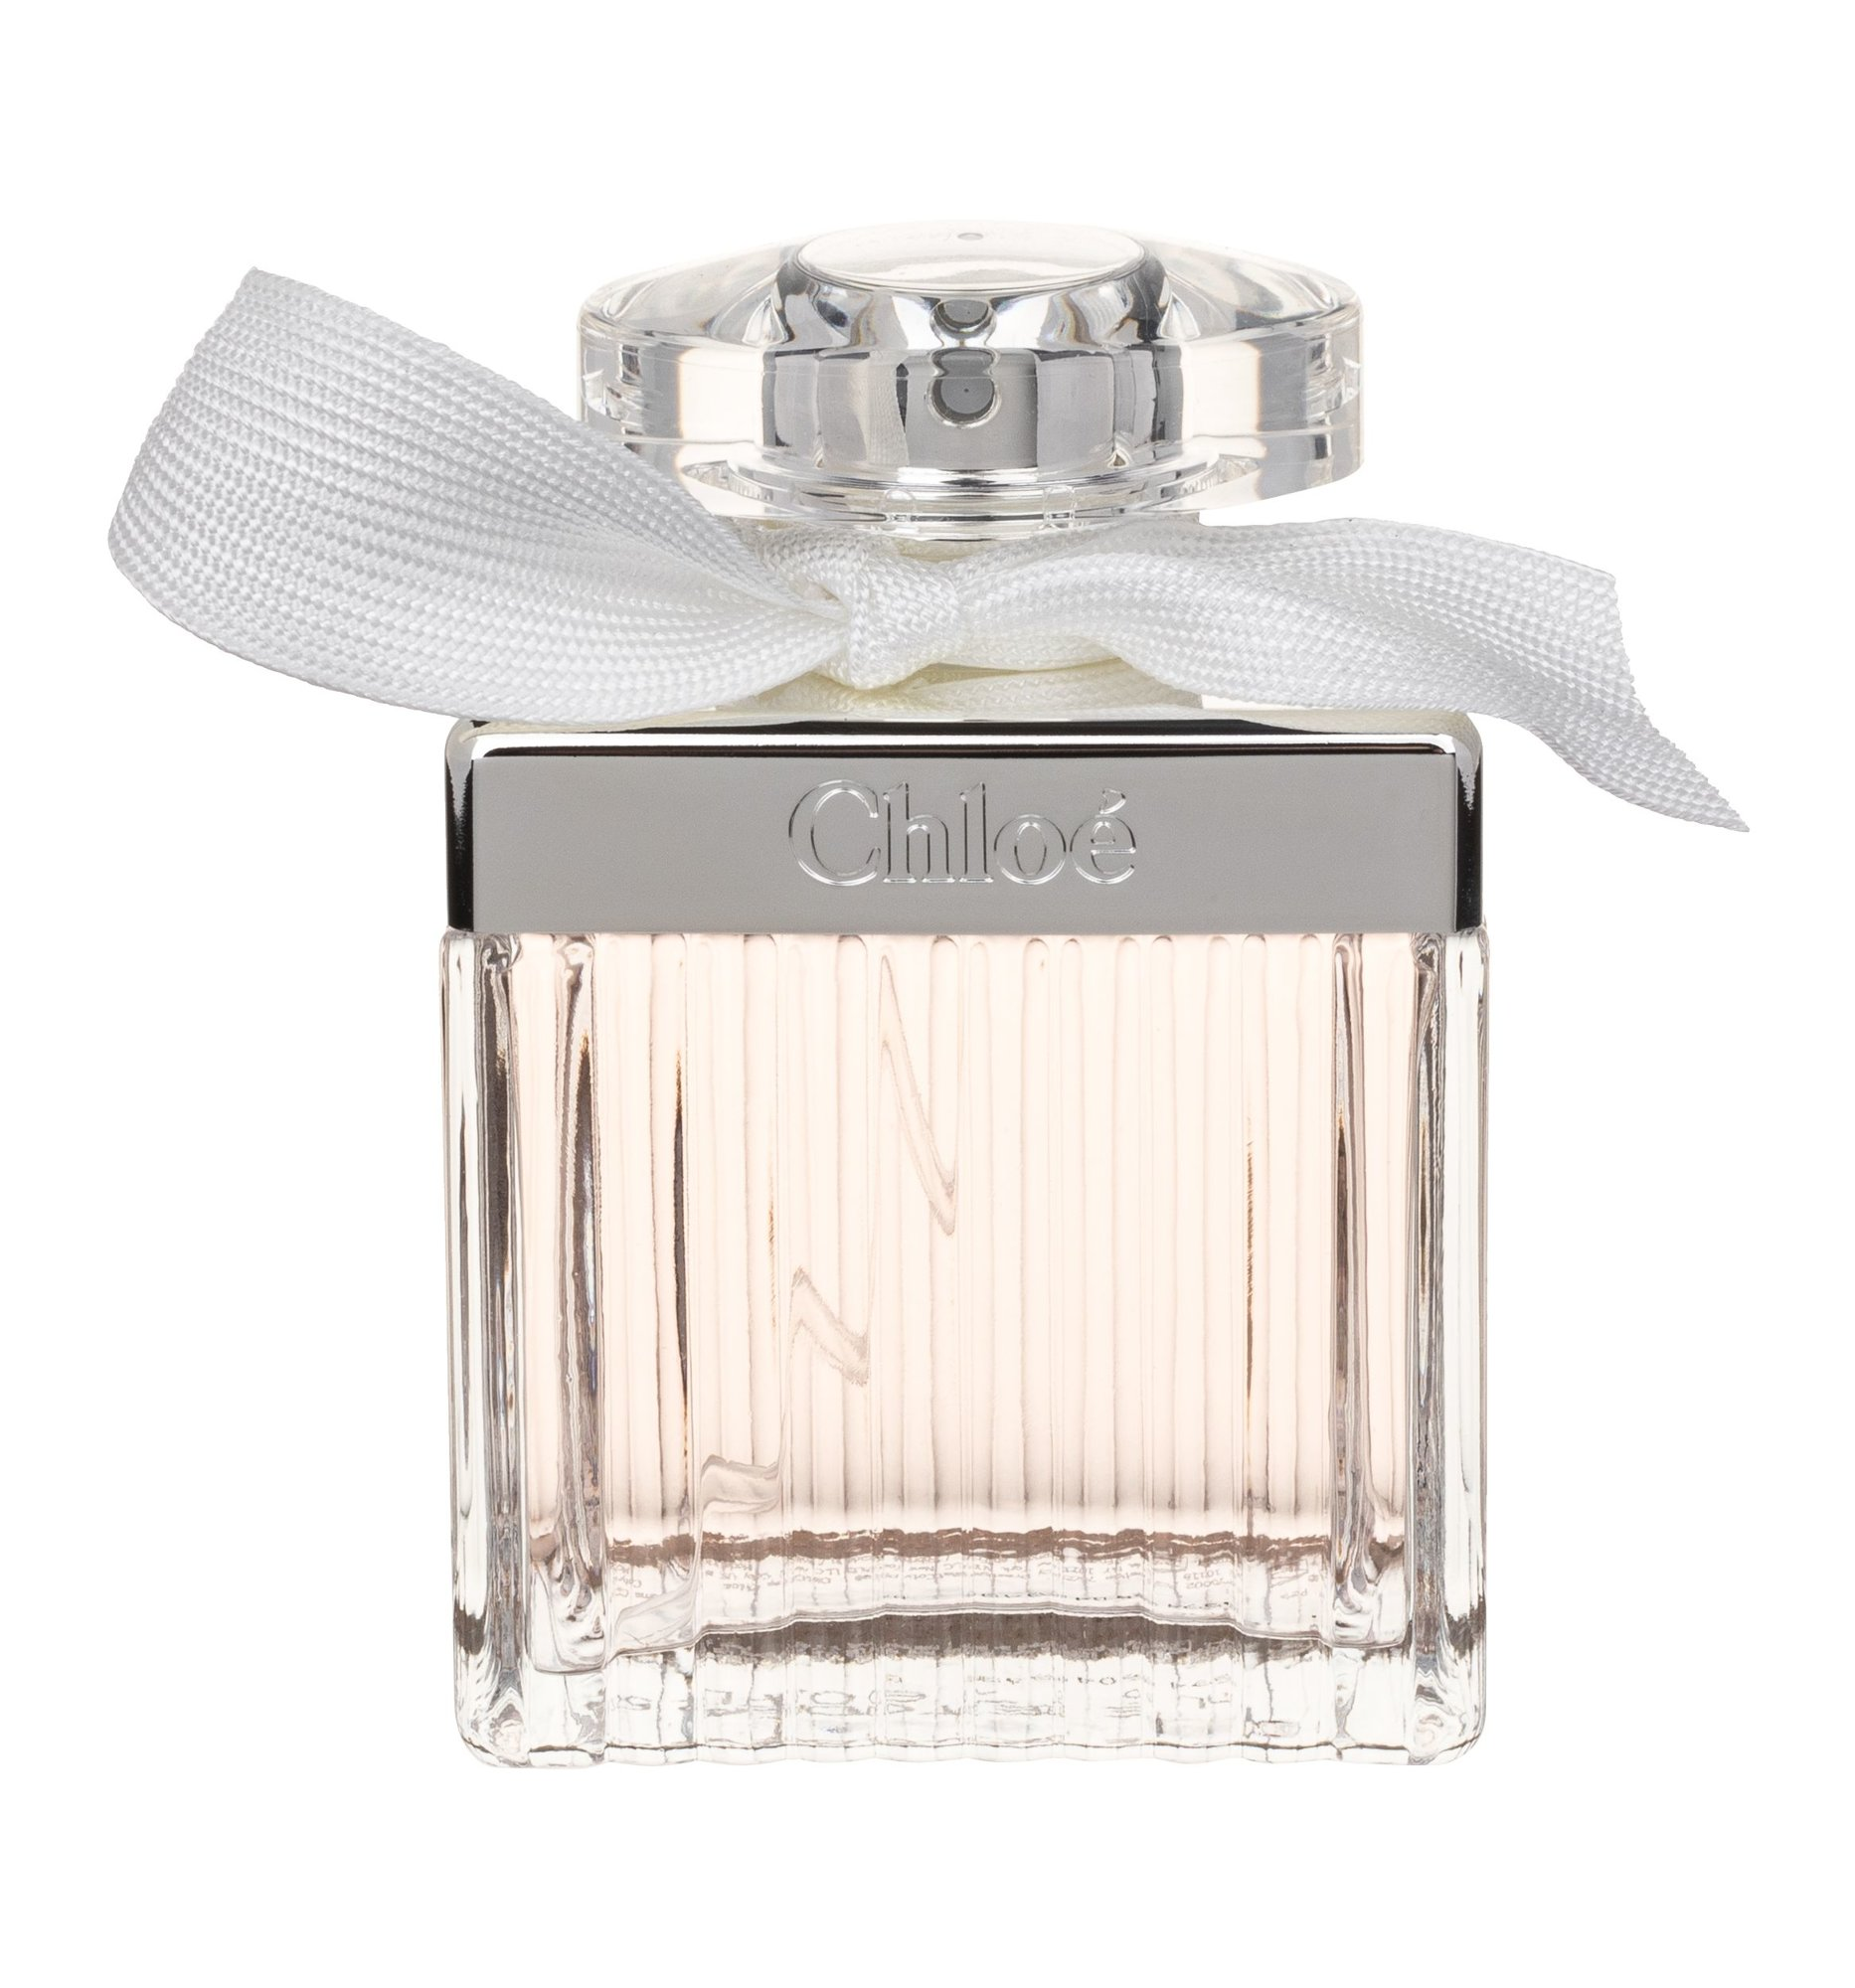 Chloe Chloe EDT 75ml  2015